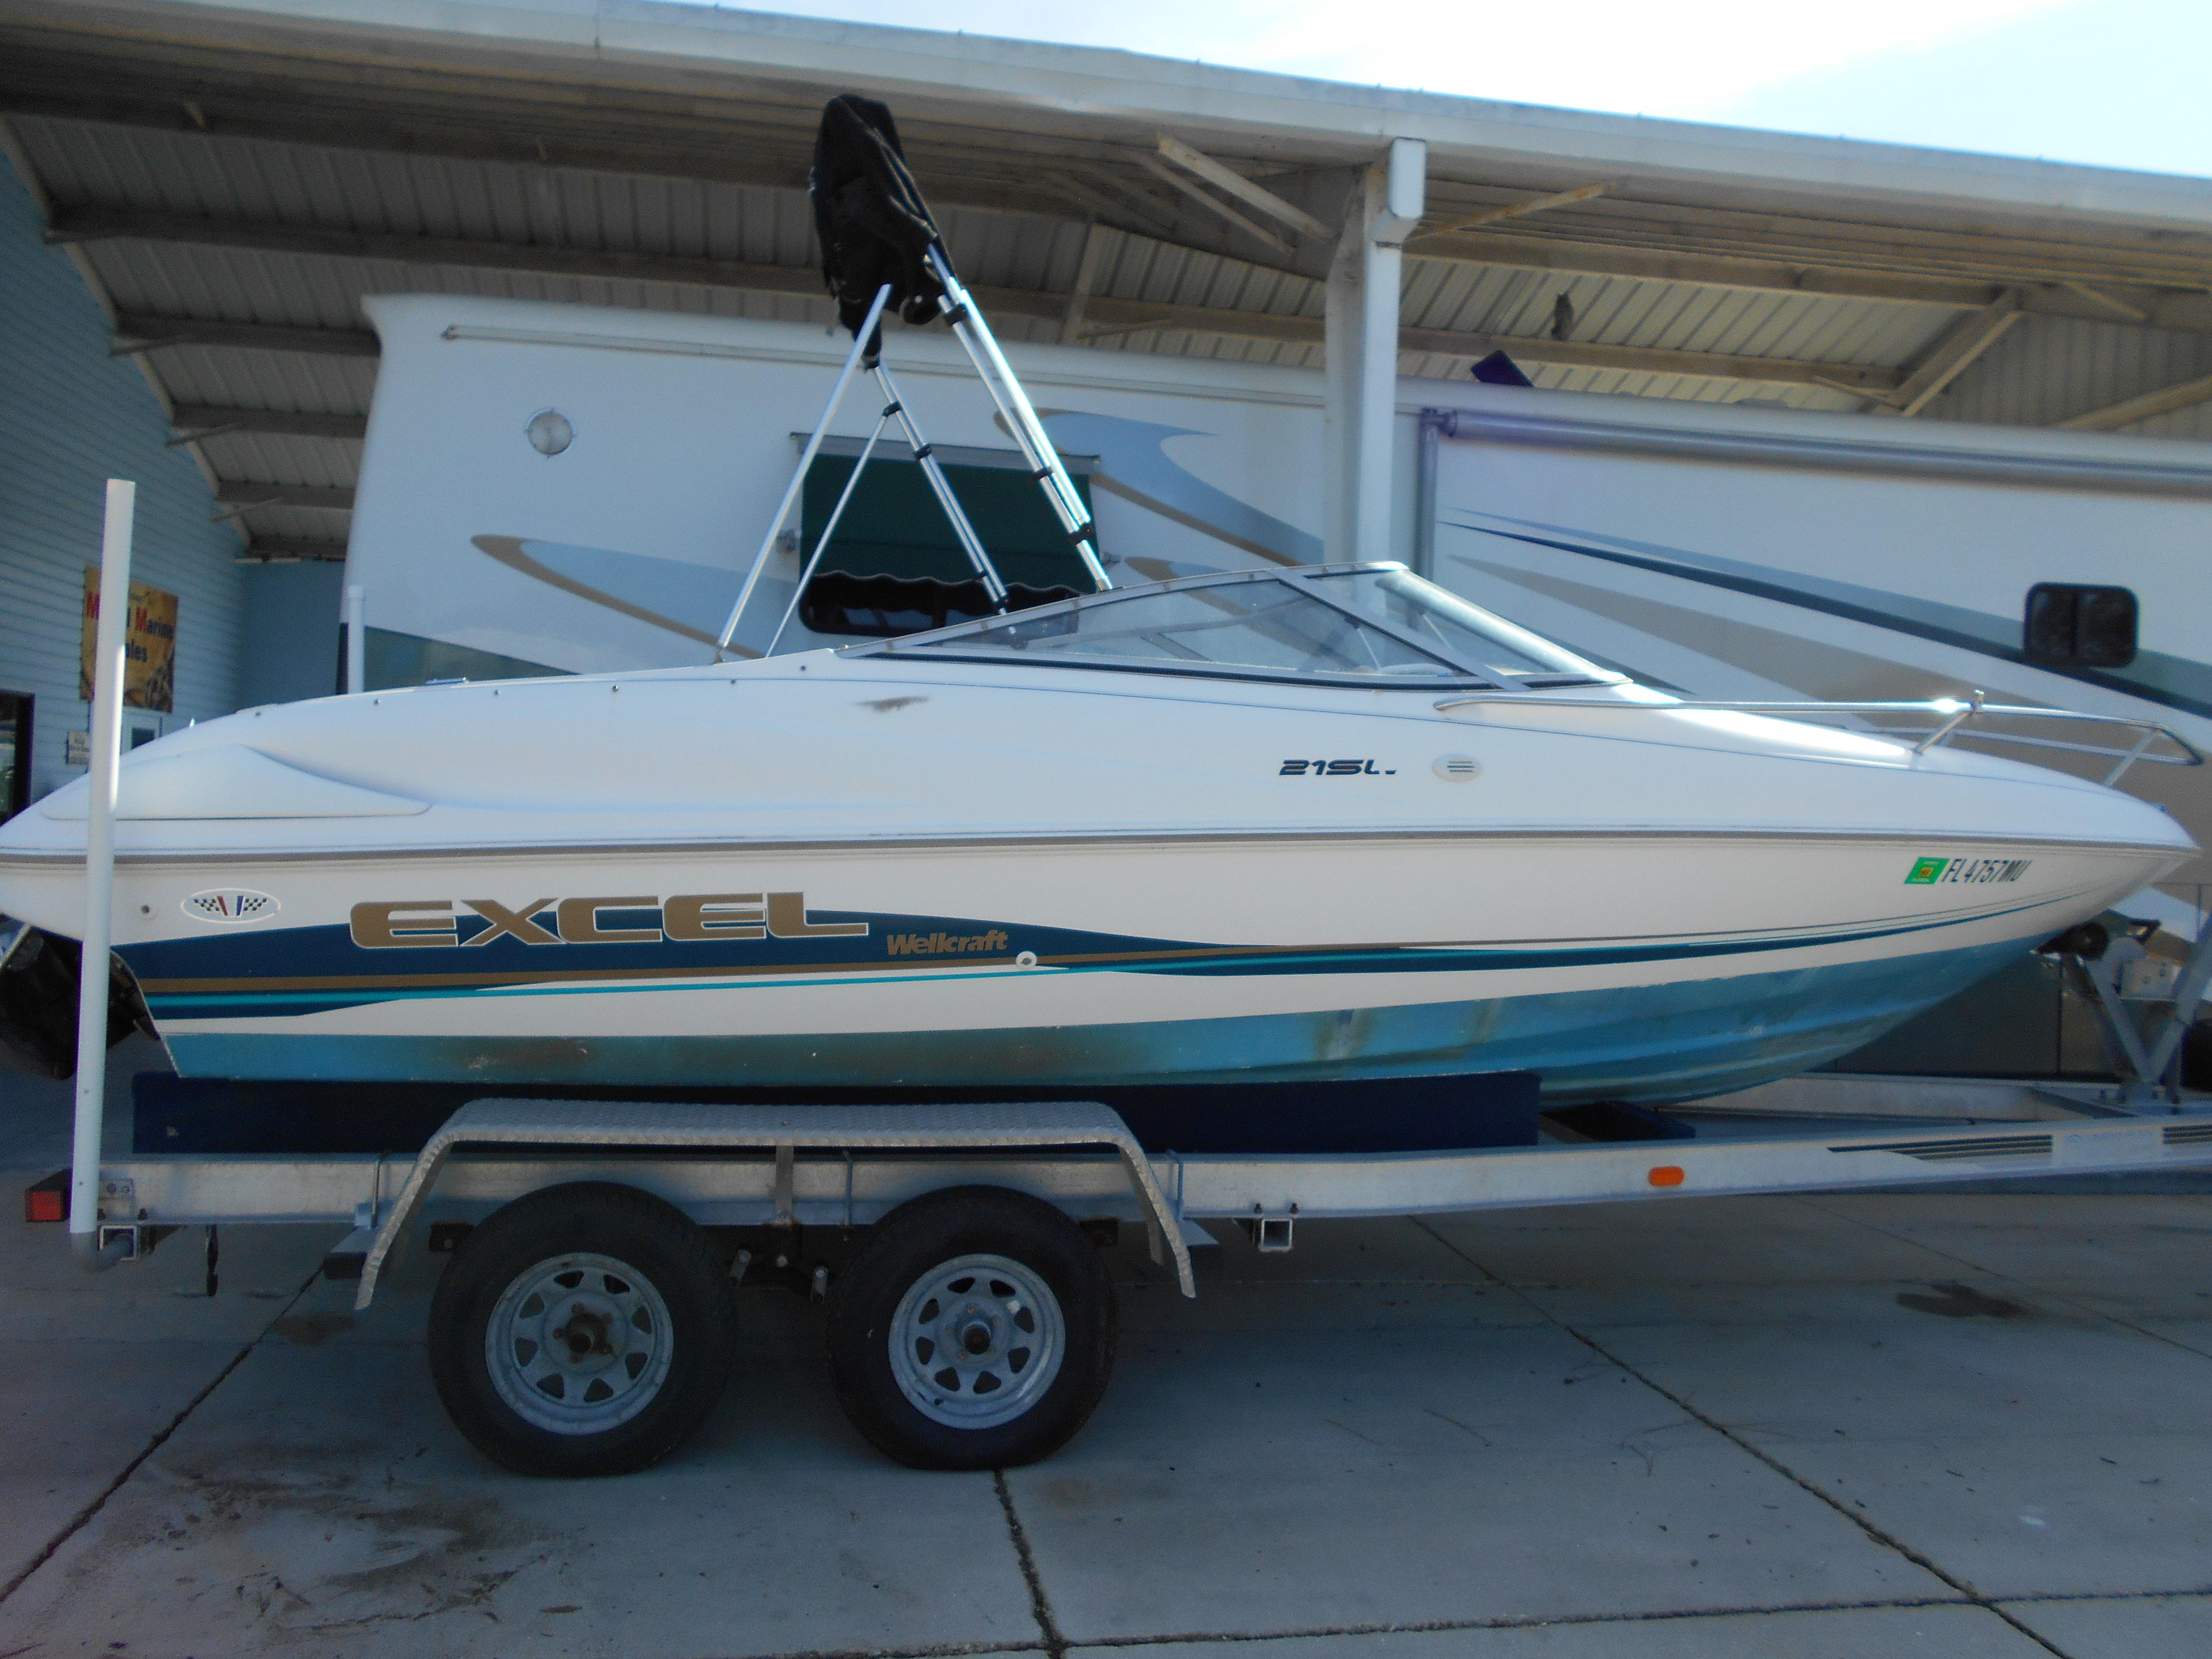 McCall Marine Sales : 1997 Wellcraft EXCEL 21SL for sale